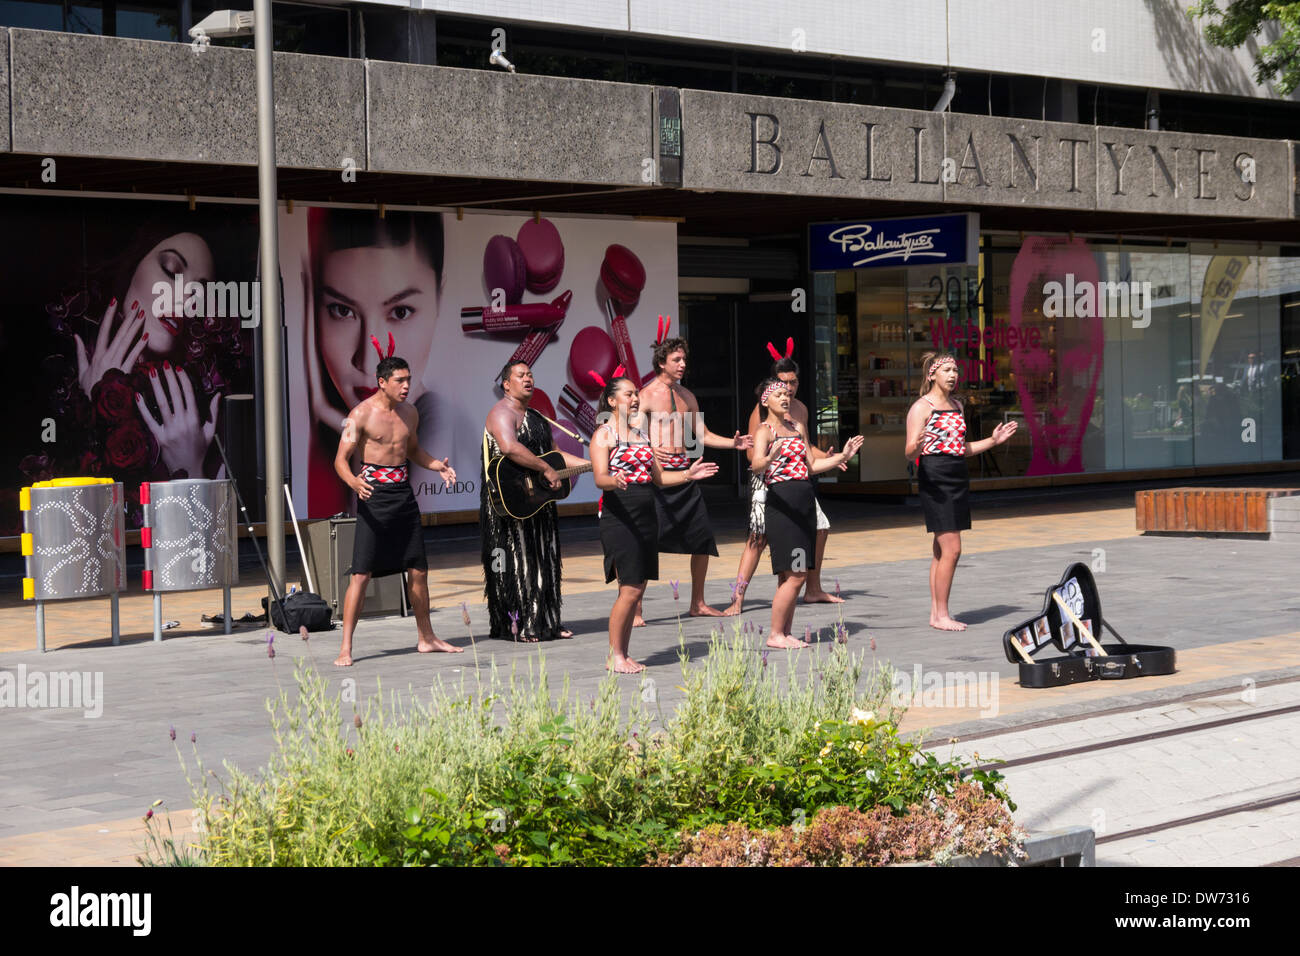 Maori entertainers in the Container Mall, Christchurch, New Zealand, with Ballantynes department store in the background. - Stock Image